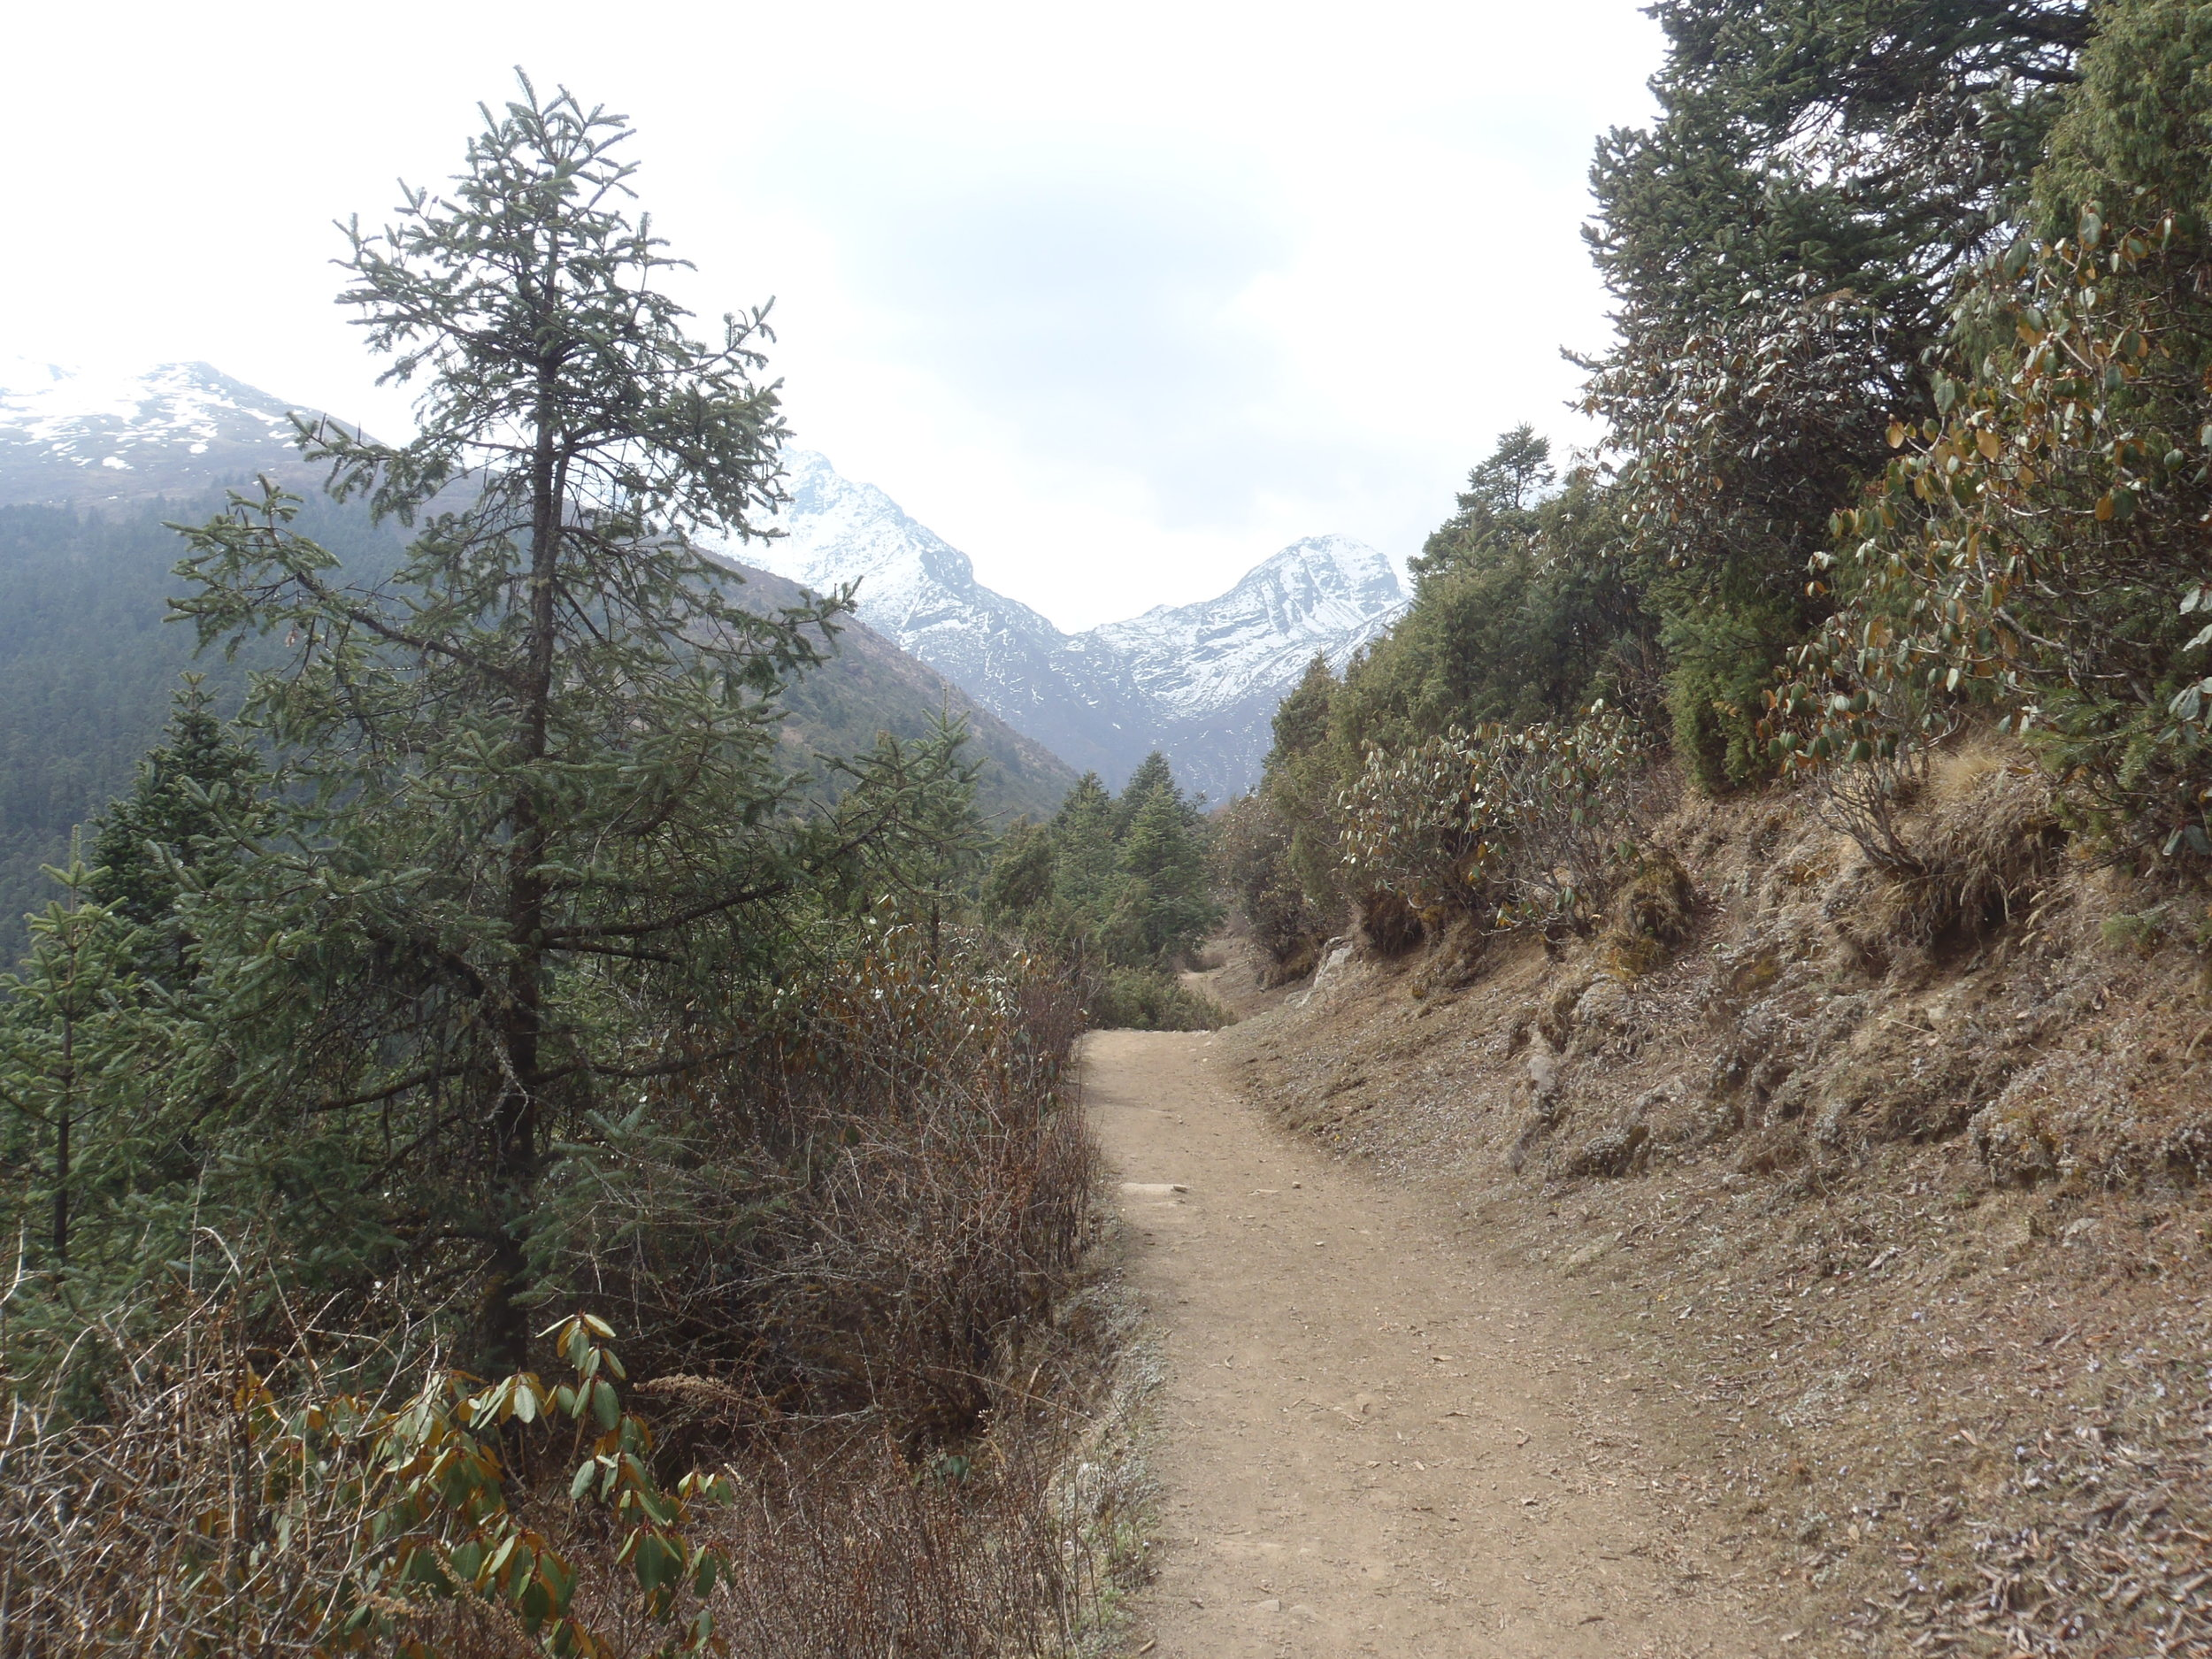 The trail to the mountains.